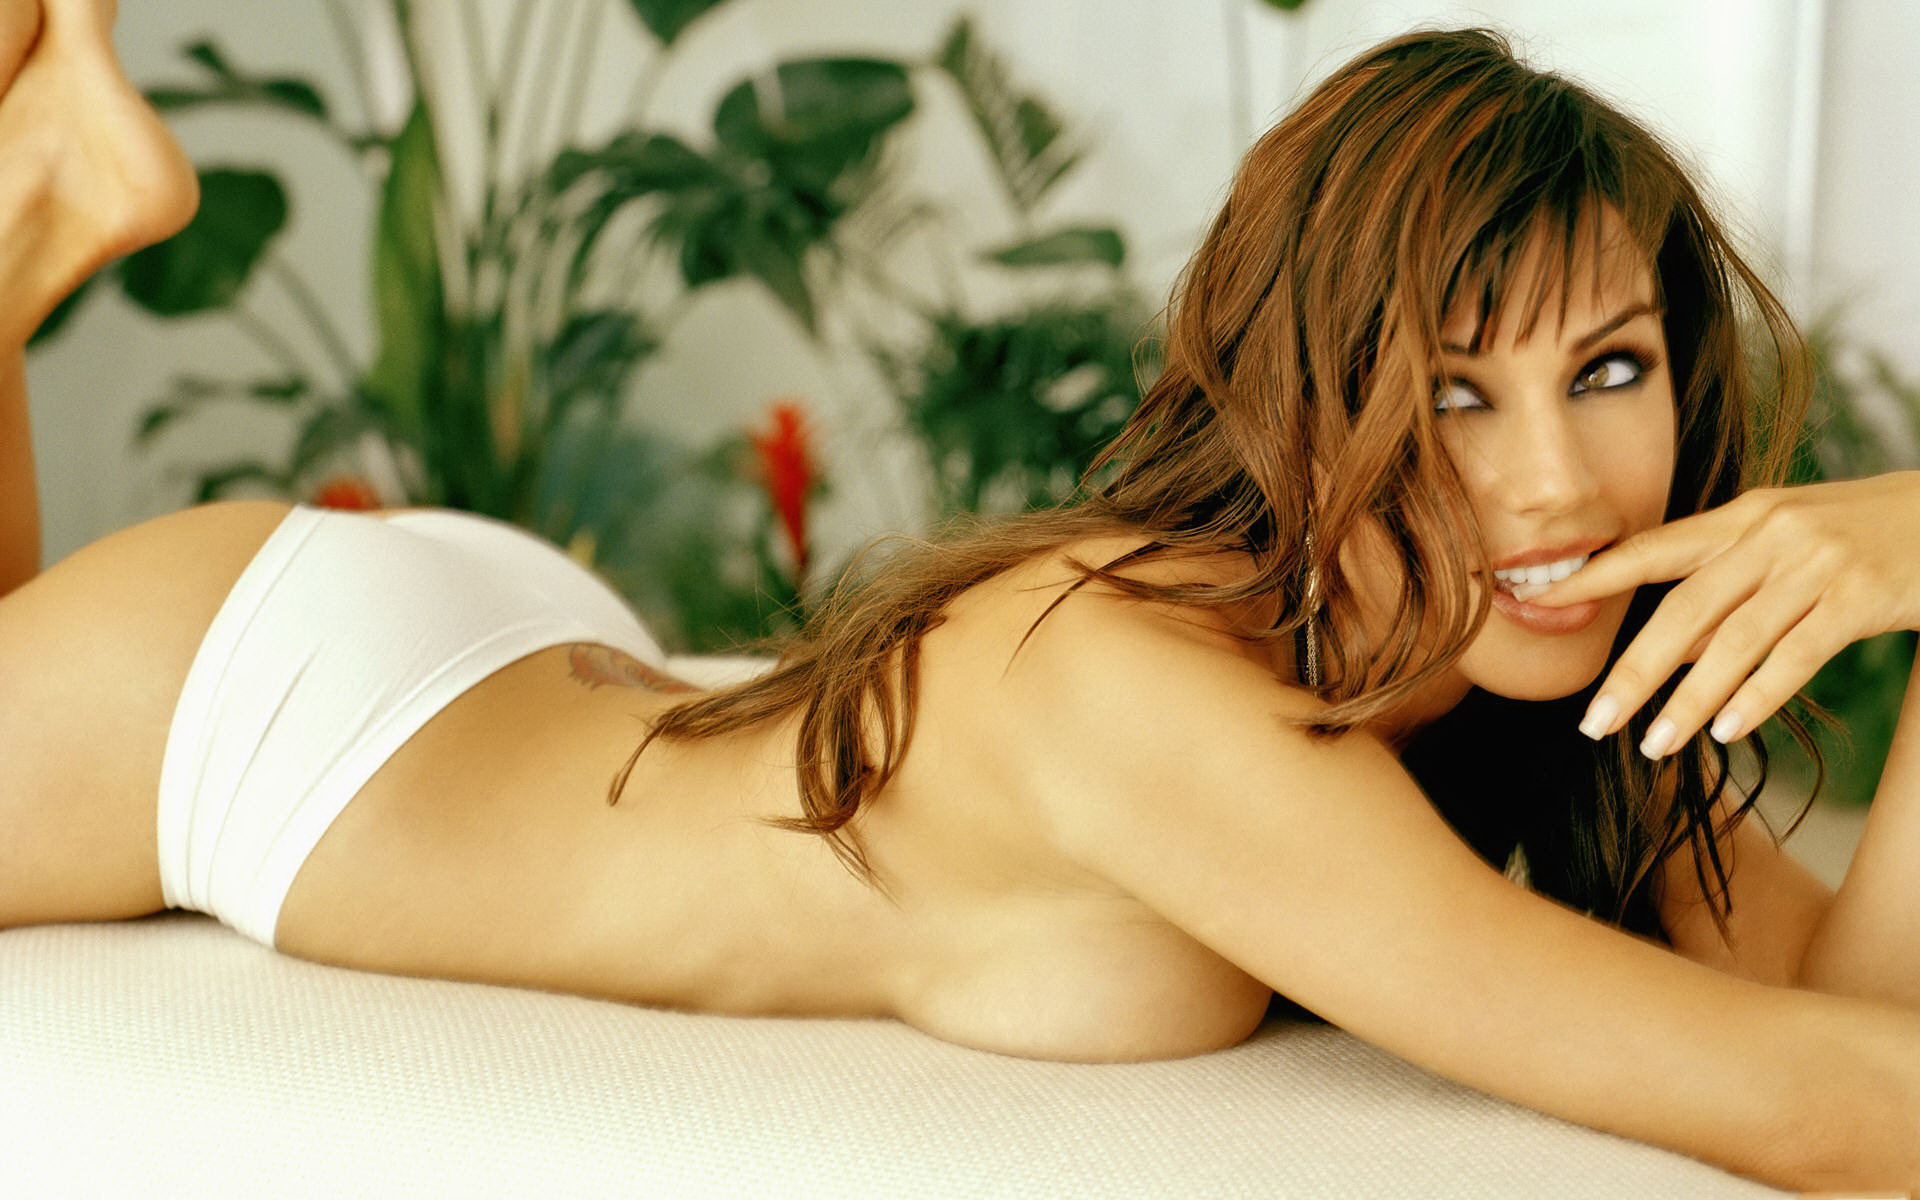 Wallpaper lingerie, shy, bed, smile, naughty, krista allen, skinny,  delicious, sexy, perfect girl, hot ass, perfect body desktop wallpaper -  Lingerie Girls ...